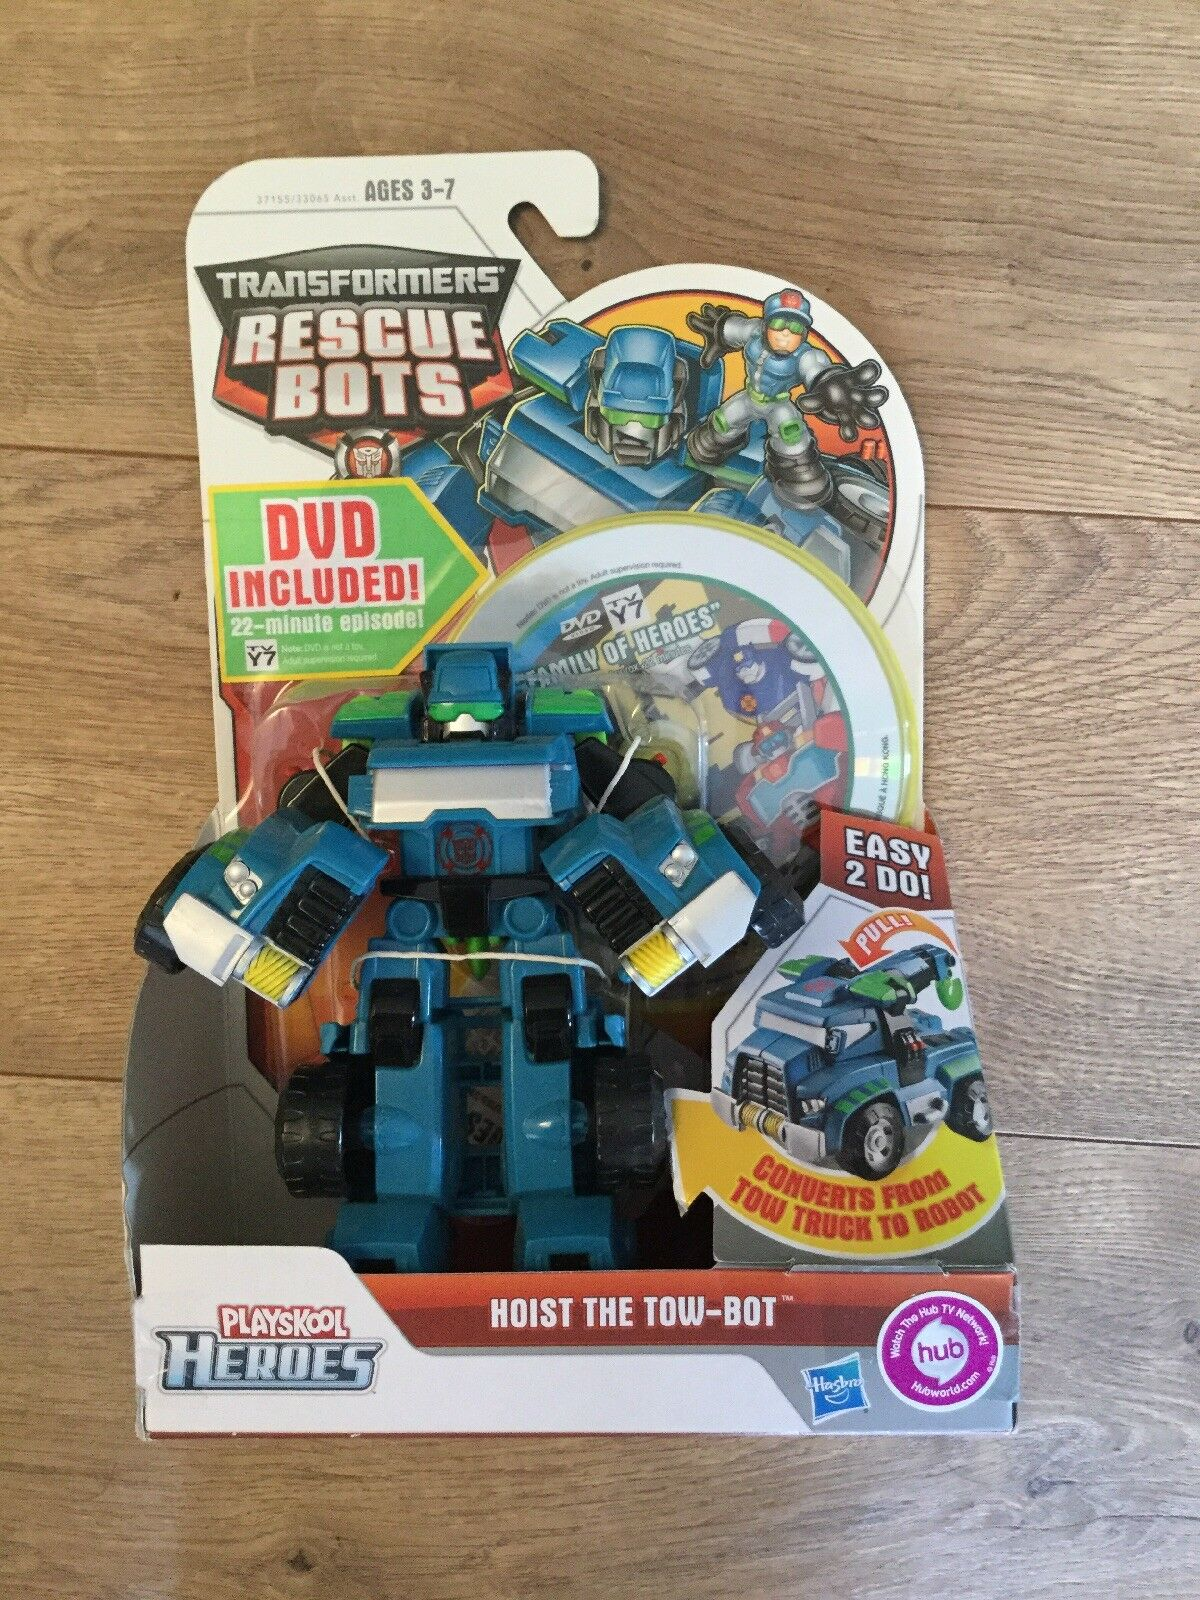 NIB 1st edition Transformers Rescue Bots Playskool Heroes Hoist Tow Bot figure